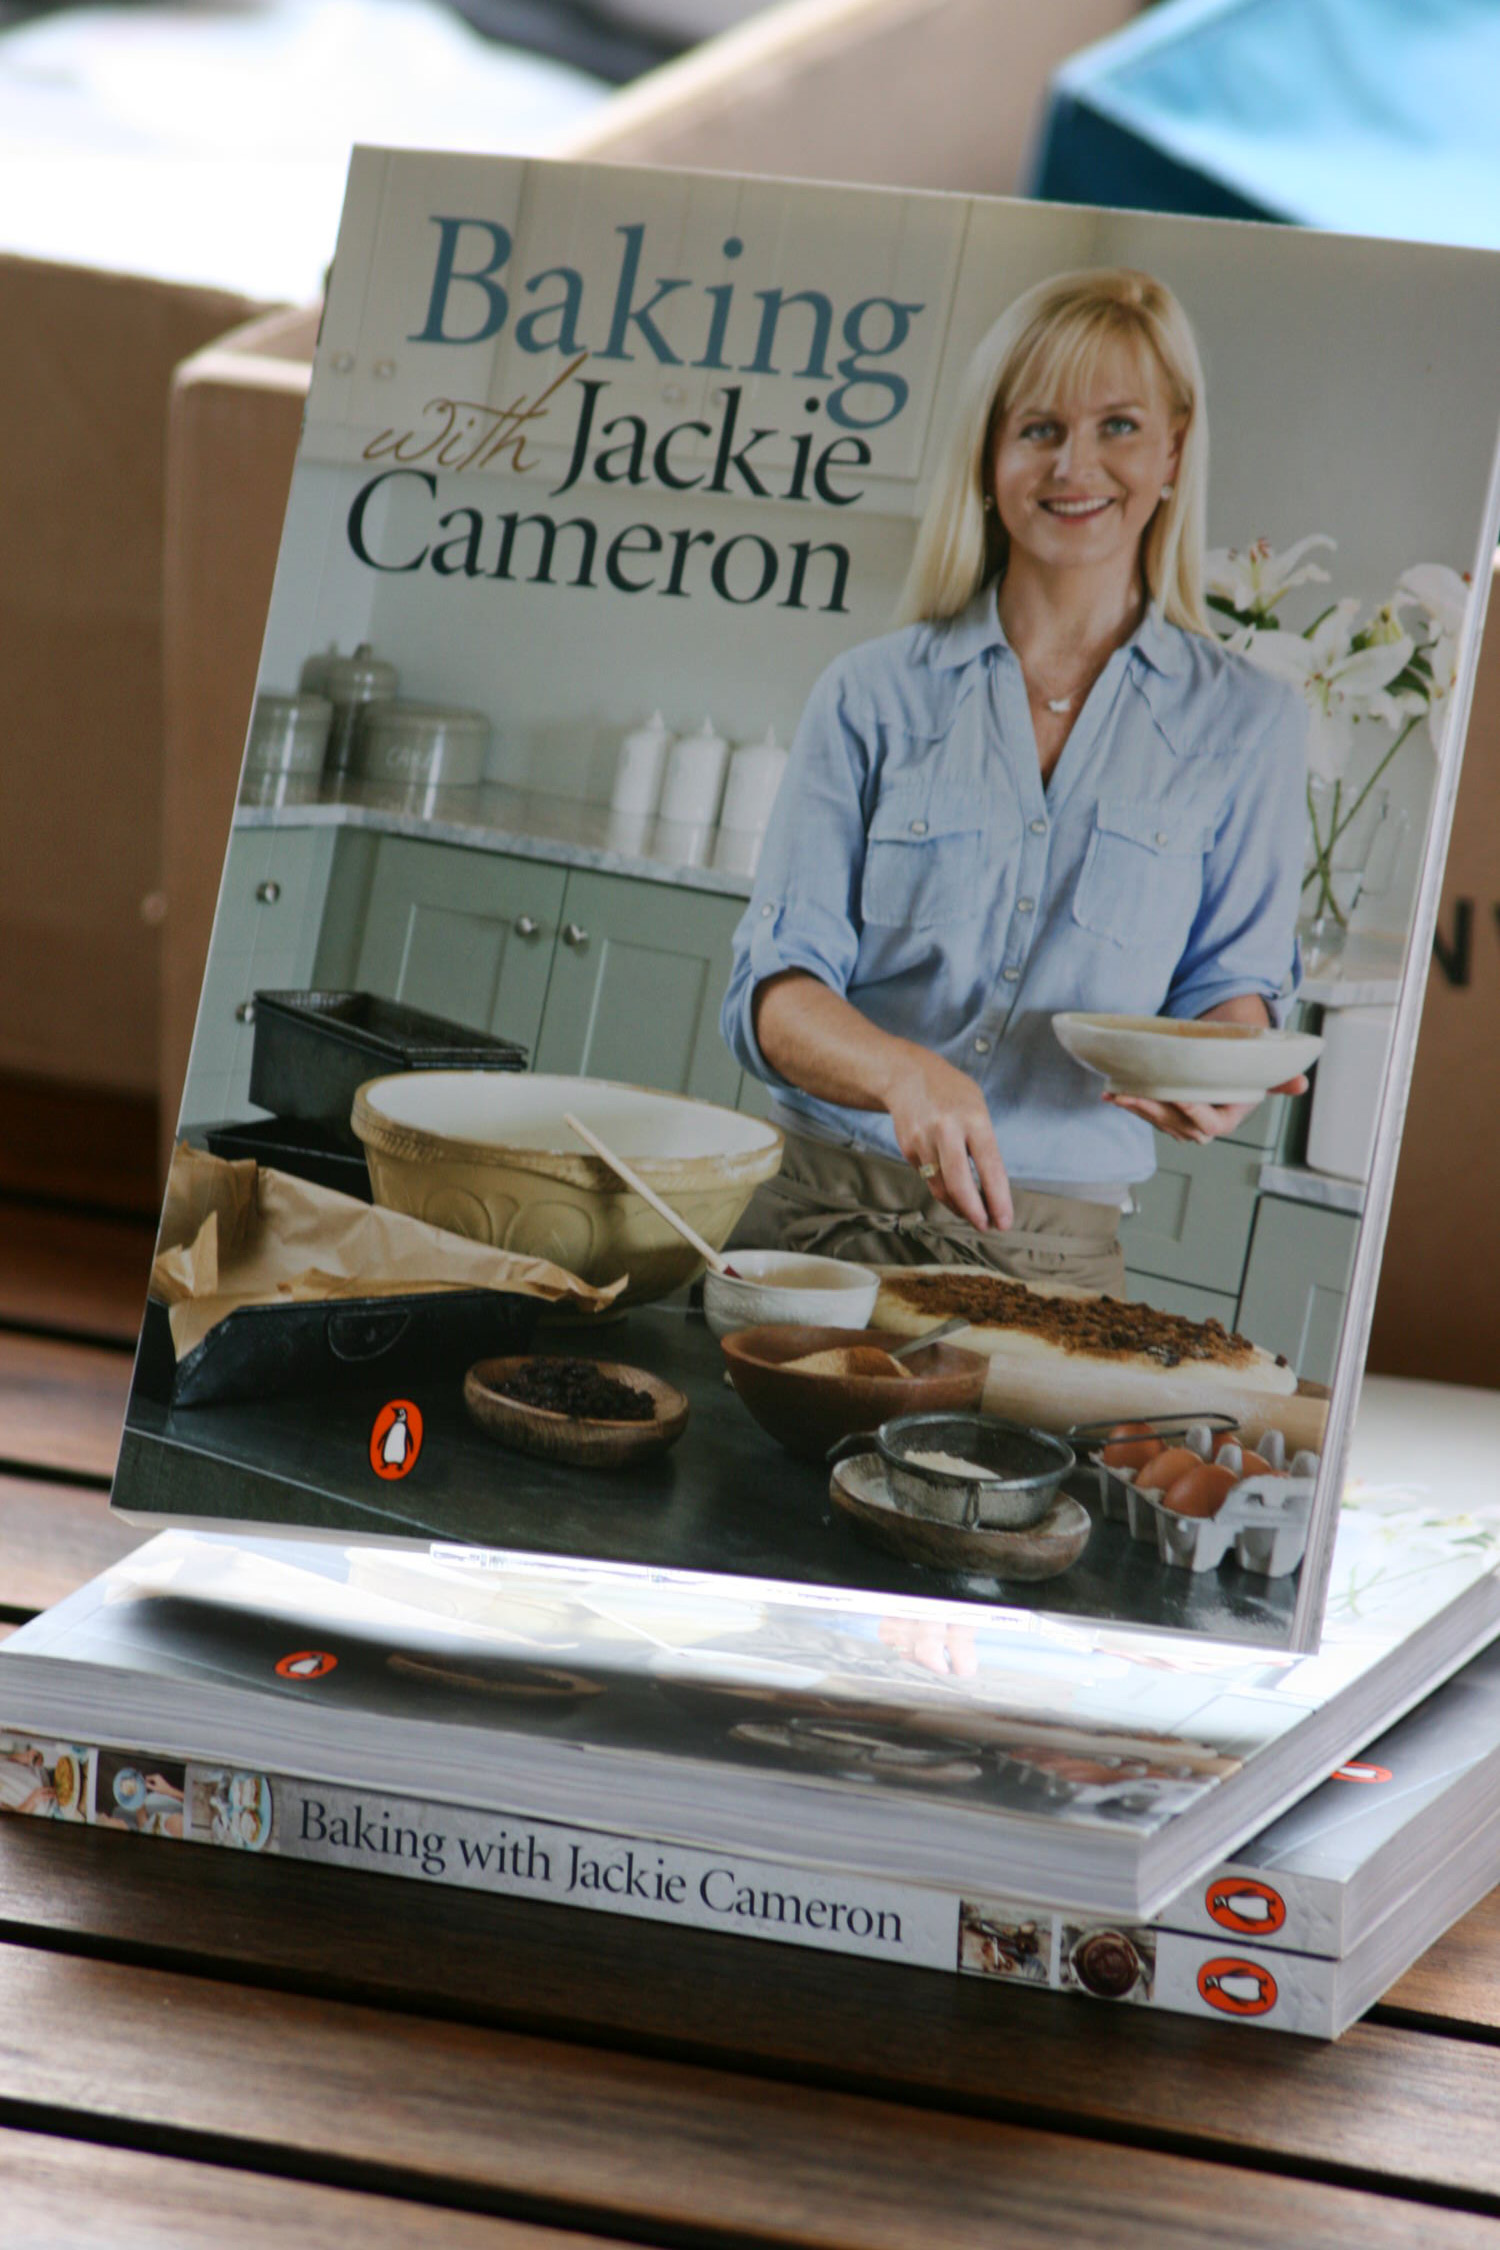 baking-with-jackie-cameron-launch-7.JPG